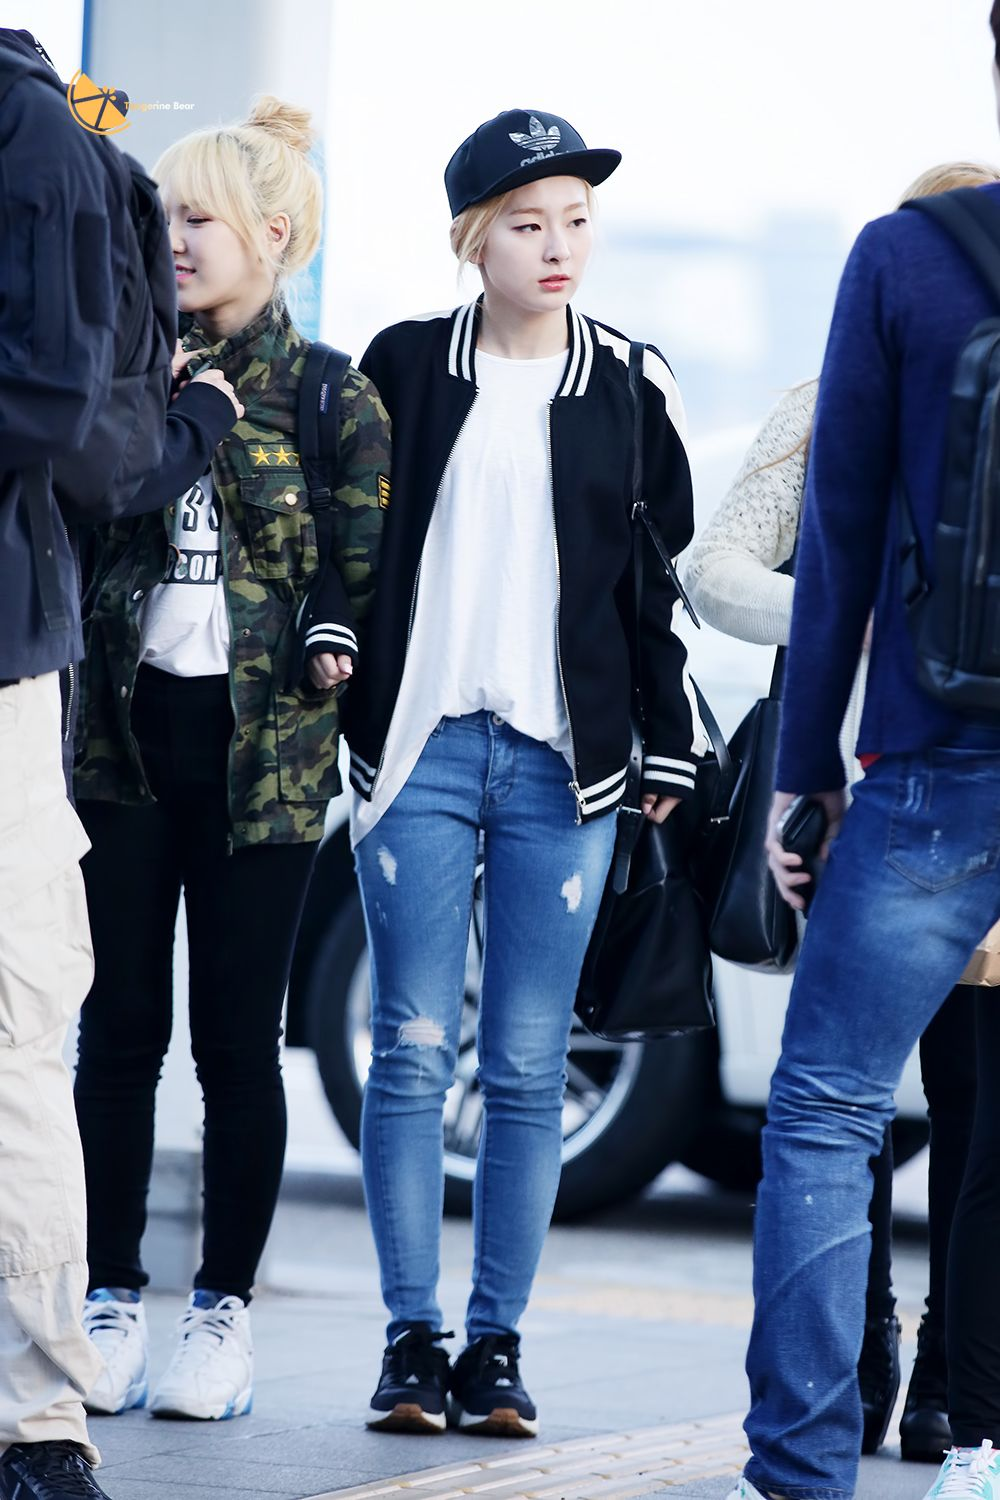 Red Velvet Wendy Seulgi Airport Fashion 150410 2015 Kpop Fashion Velvet Fashion Korean Airport Fashion